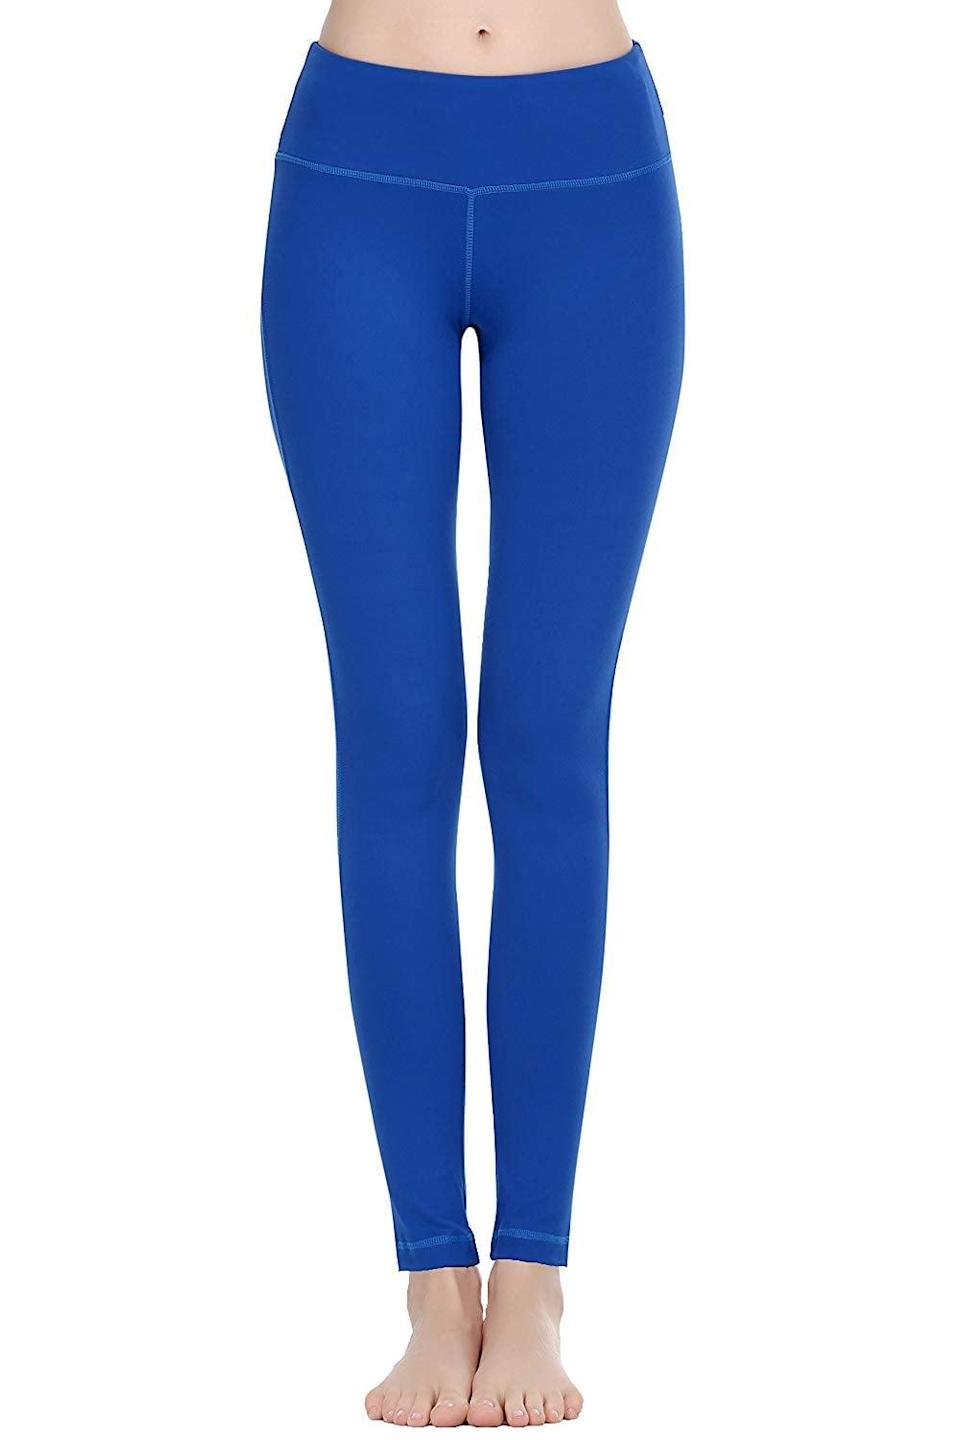 """<p>These <a href=""""https://www.popsugar.com/buy/Oalka-Women-Power-Flex-Yoga-Pants-365704?p_name=Oalka%20Women%20Power%20Flex%20Yoga%20Pants&retailer=amazon.com&pid=365704&price=20&evar1=fit%3Aus&evar9=45278643&evar98=https%3A%2F%2Fwww.popsugar.com%2Ffitness%2Fphoto-gallery%2F45278643%2Fimage%2F45278652%2FOalka-Women-Power-Flex-Yoga-Pants&list1=shopping%2Camazon%2Cworkout%20clothes%2Cleggings%2Cfitness%20gear&prop13=mobile&pdata=1"""" class=""""link rapid-noclick-resp"""" rel=""""nofollow noopener"""" target=""""_blank"""" data-ylk=""""slk:Oalka Women Power Flex Yoga Pants"""">Oalka Women Power Flex Yoga Pants</a> ($20) have over 2,000 positive reviews, with one customer claiming """"these are the perfect workout pants!""""</p>"""